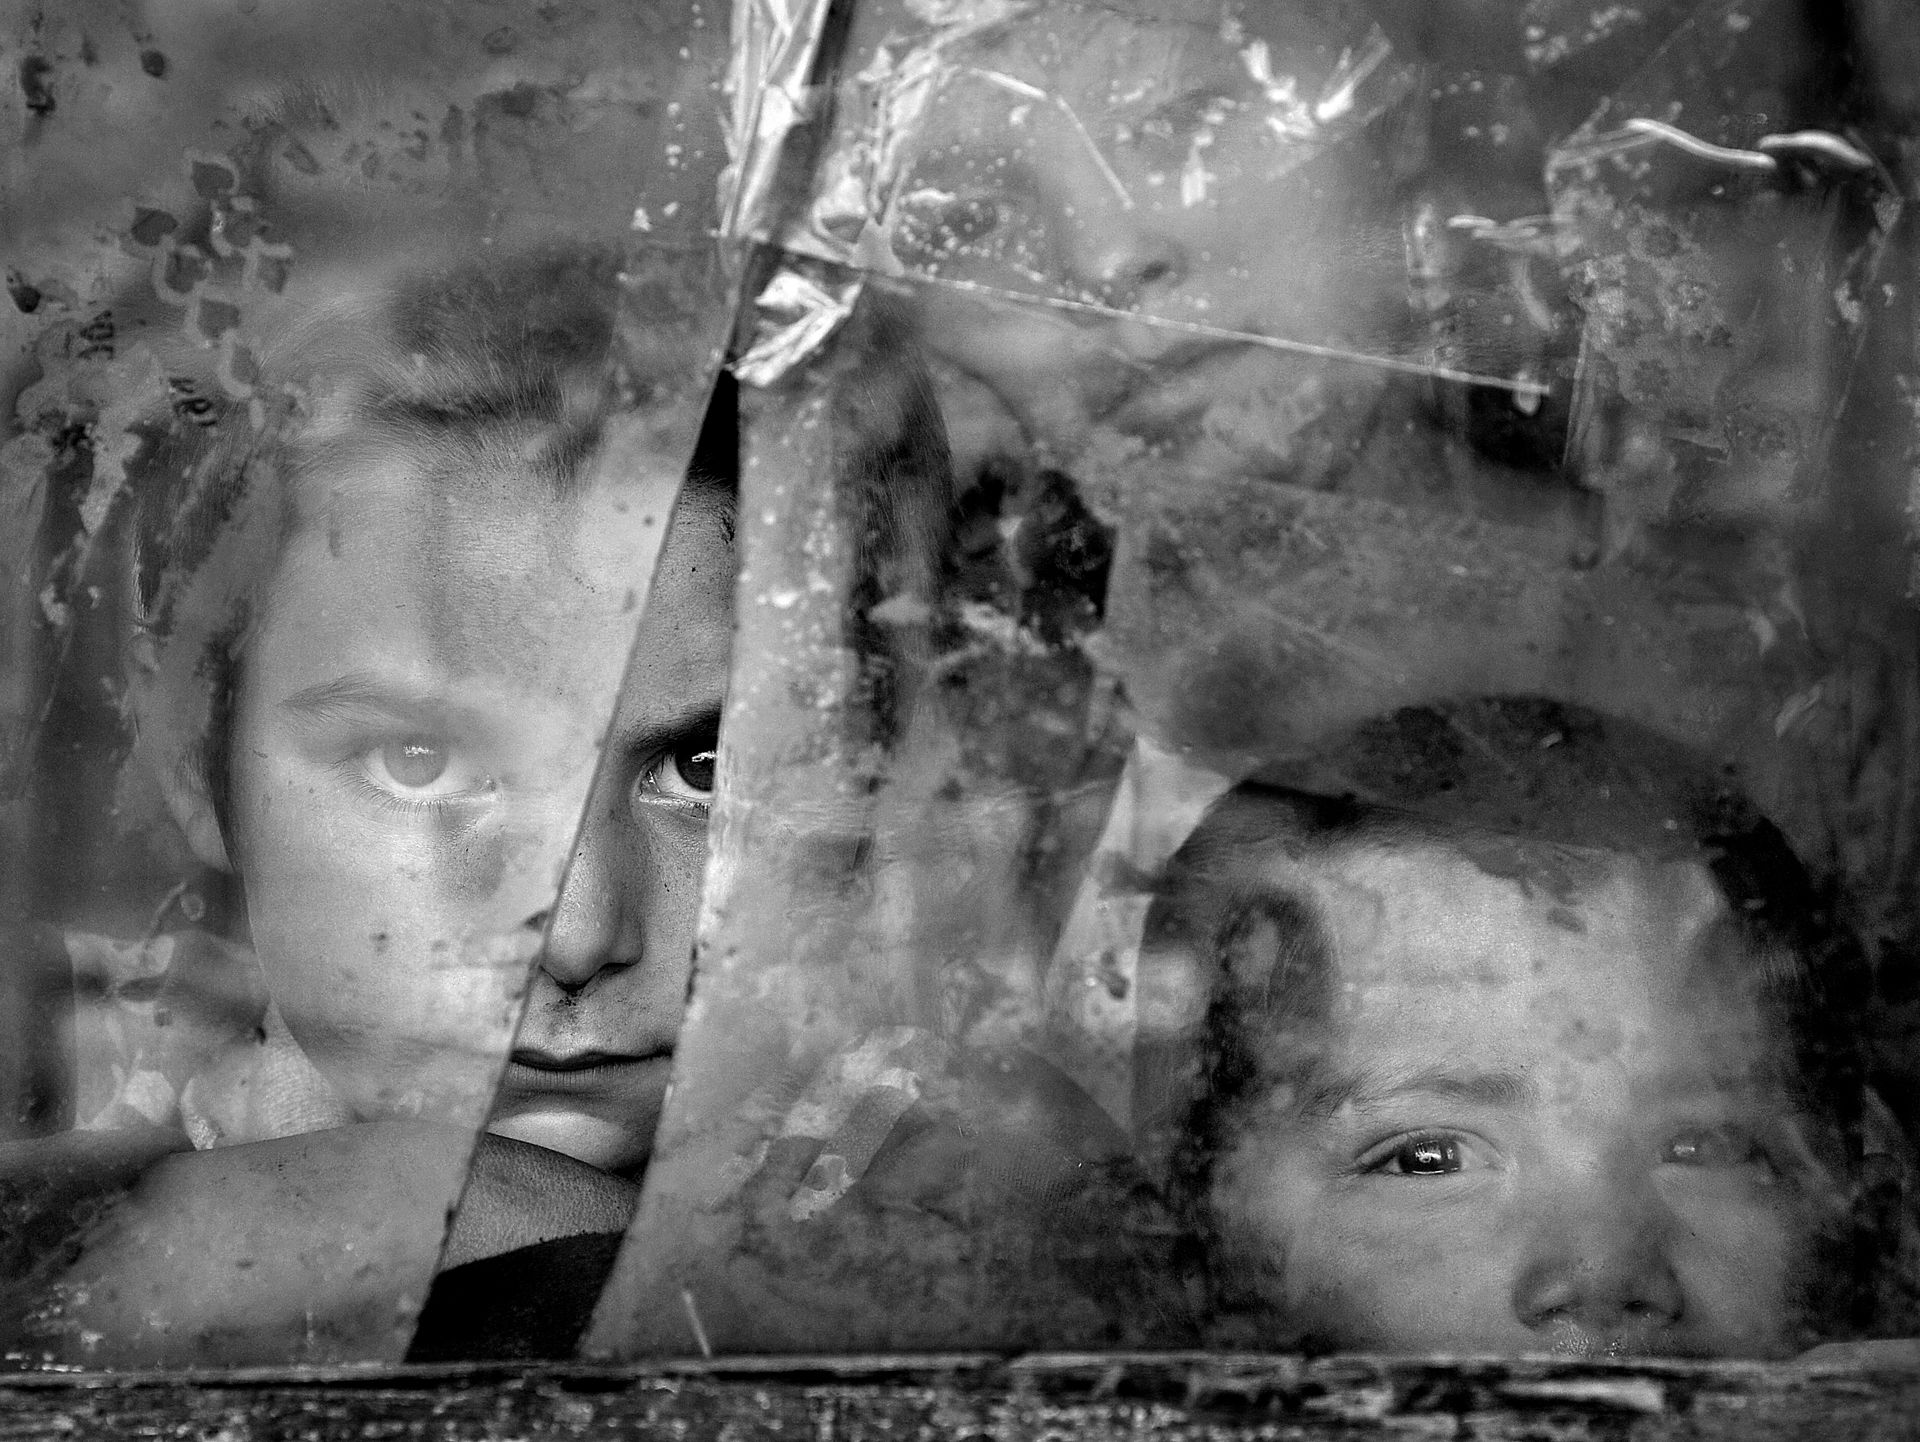 Faces in window